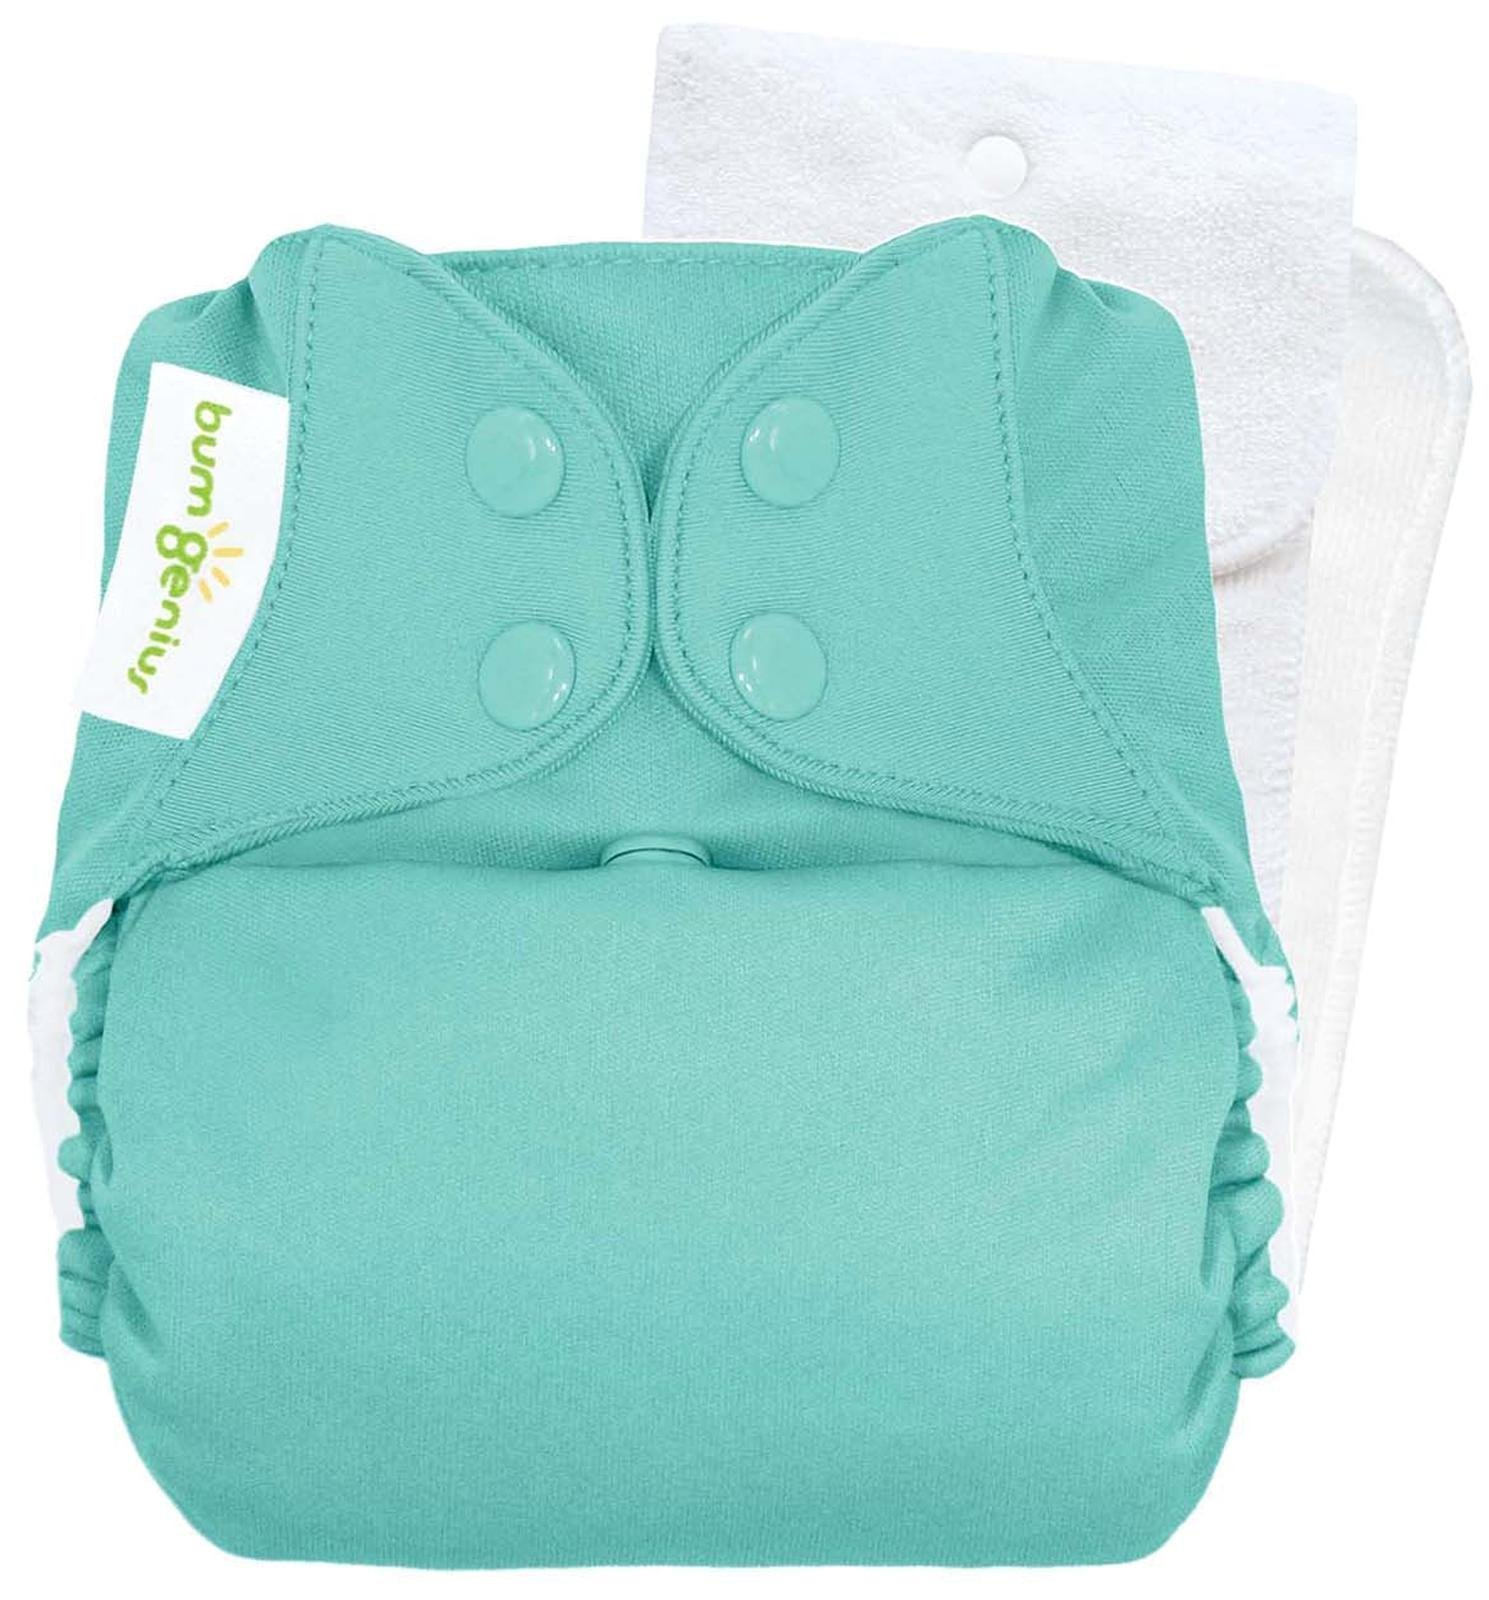 bumGenius Original One-Size Pocket-Style Cloth Diaper 5.0 (Mirror)